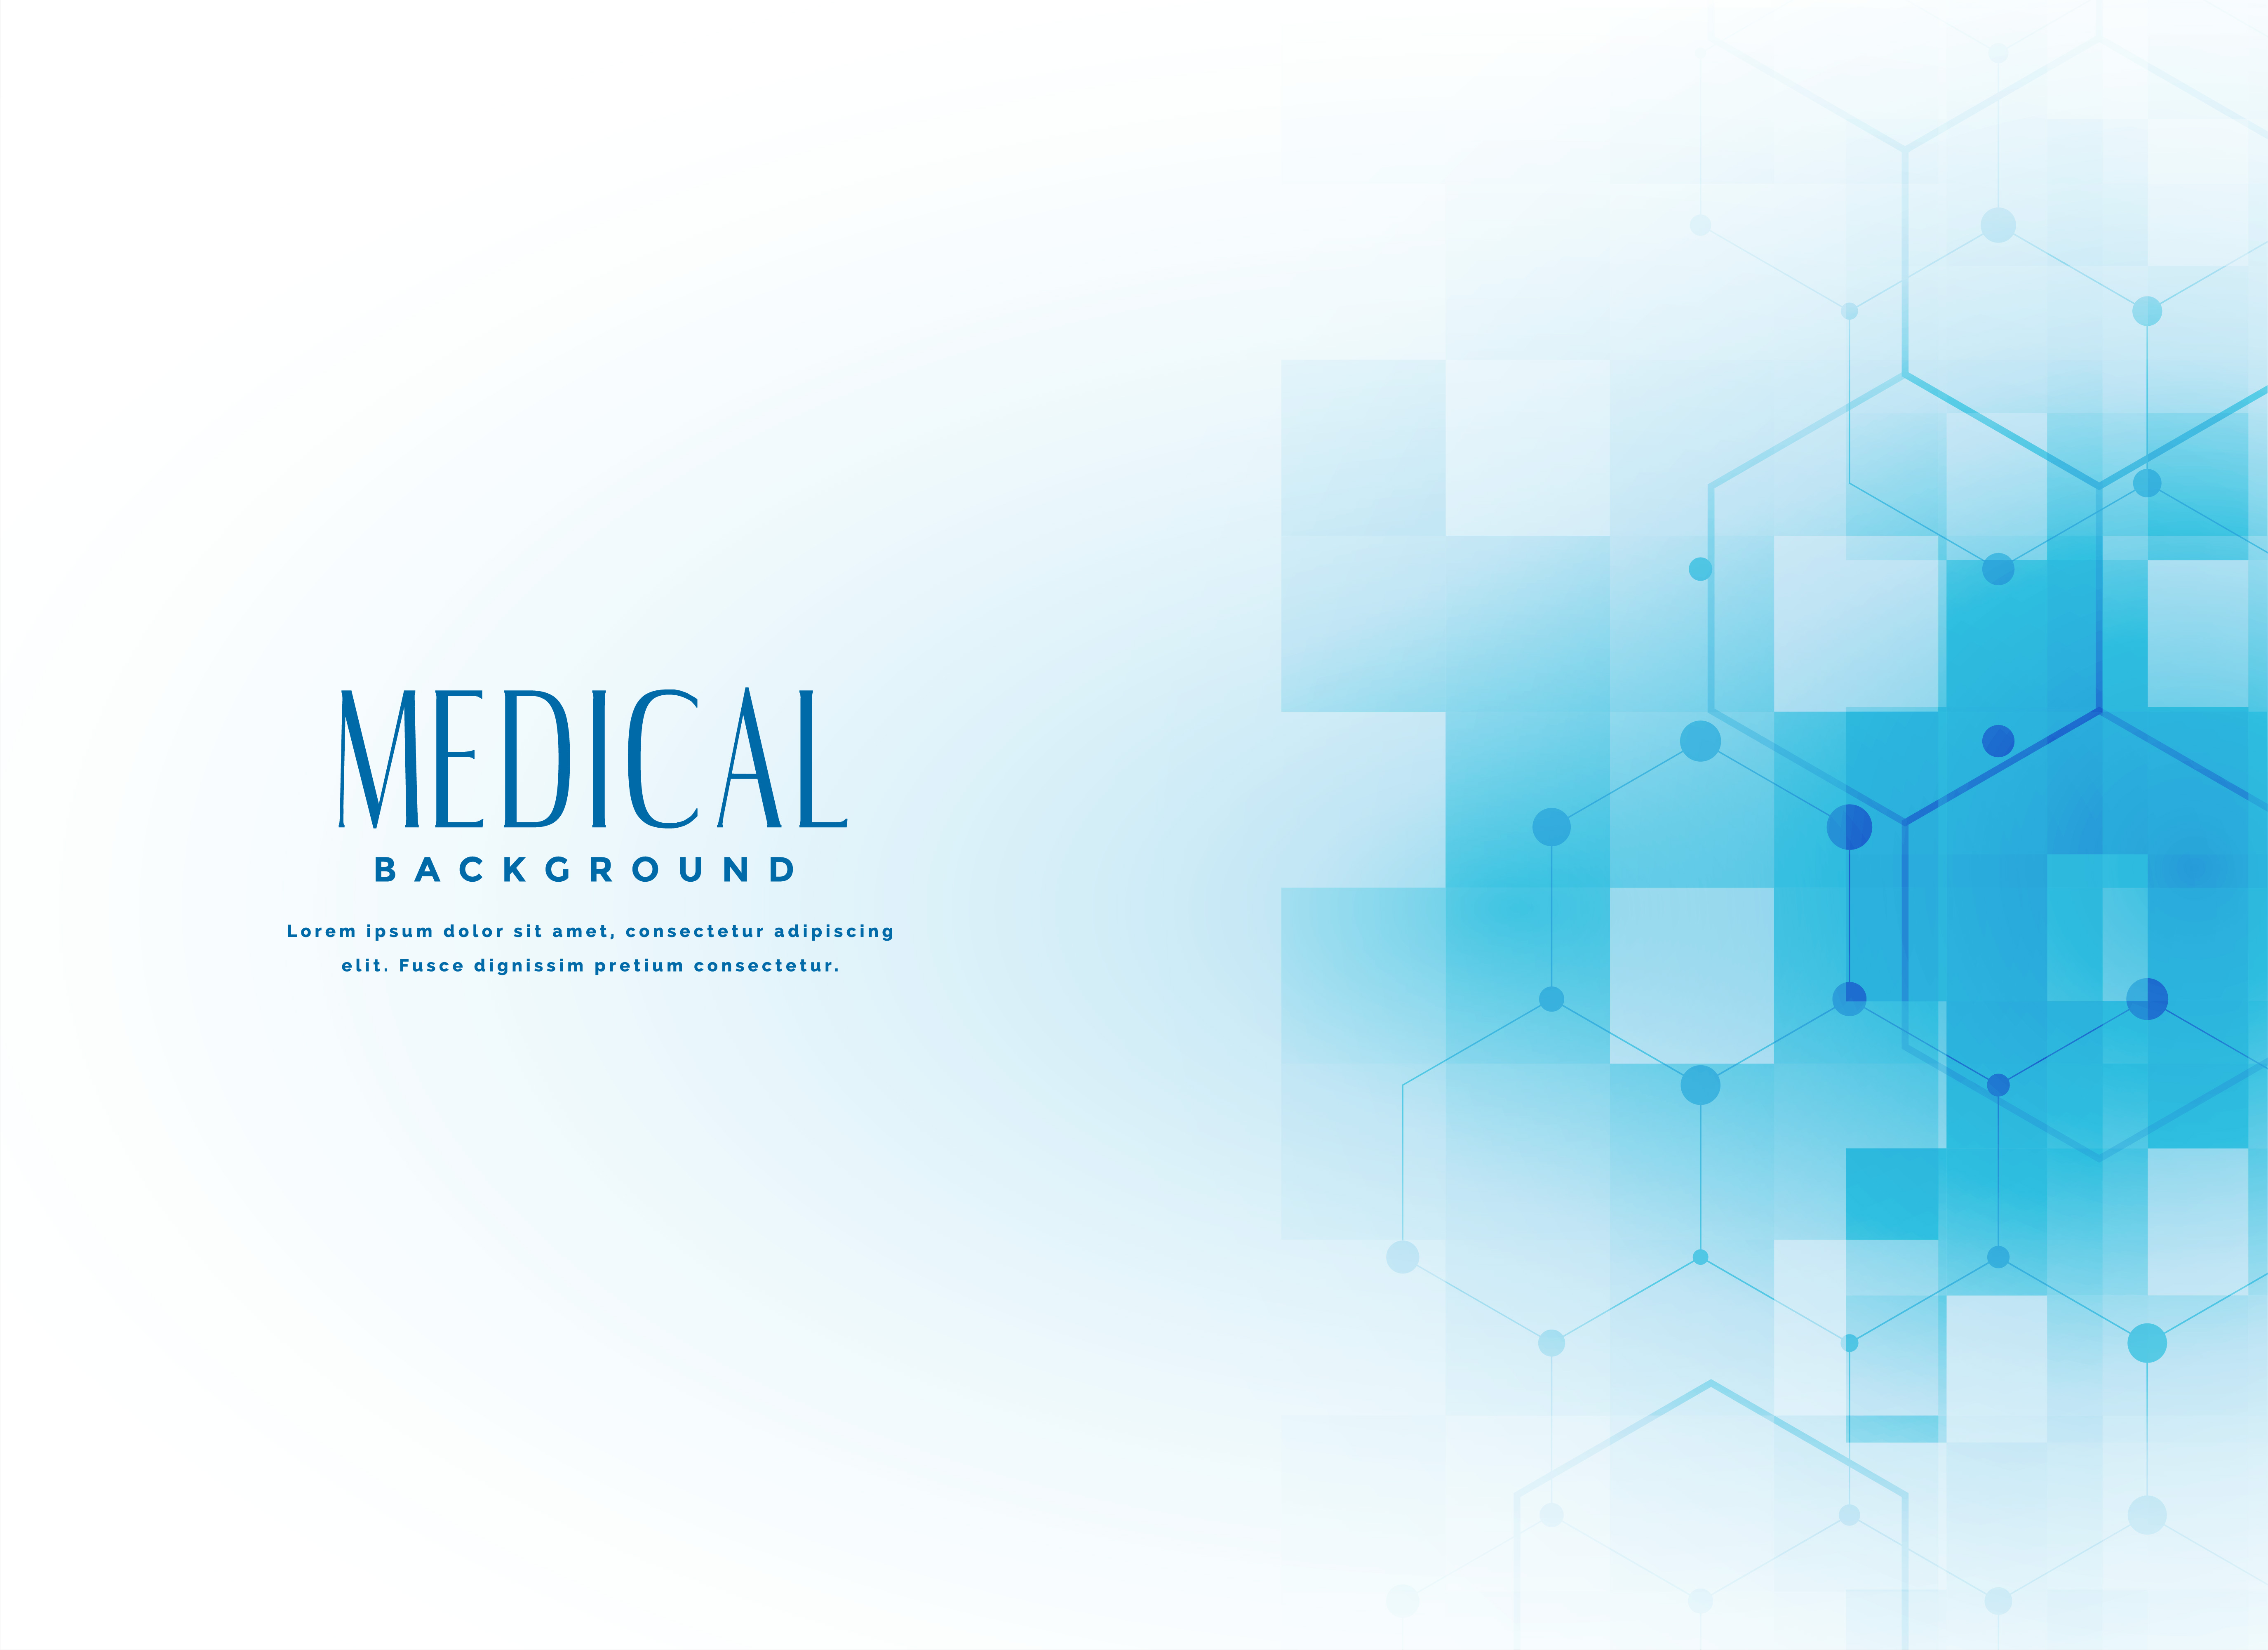 Medical Science Background In Blue Color Download Free